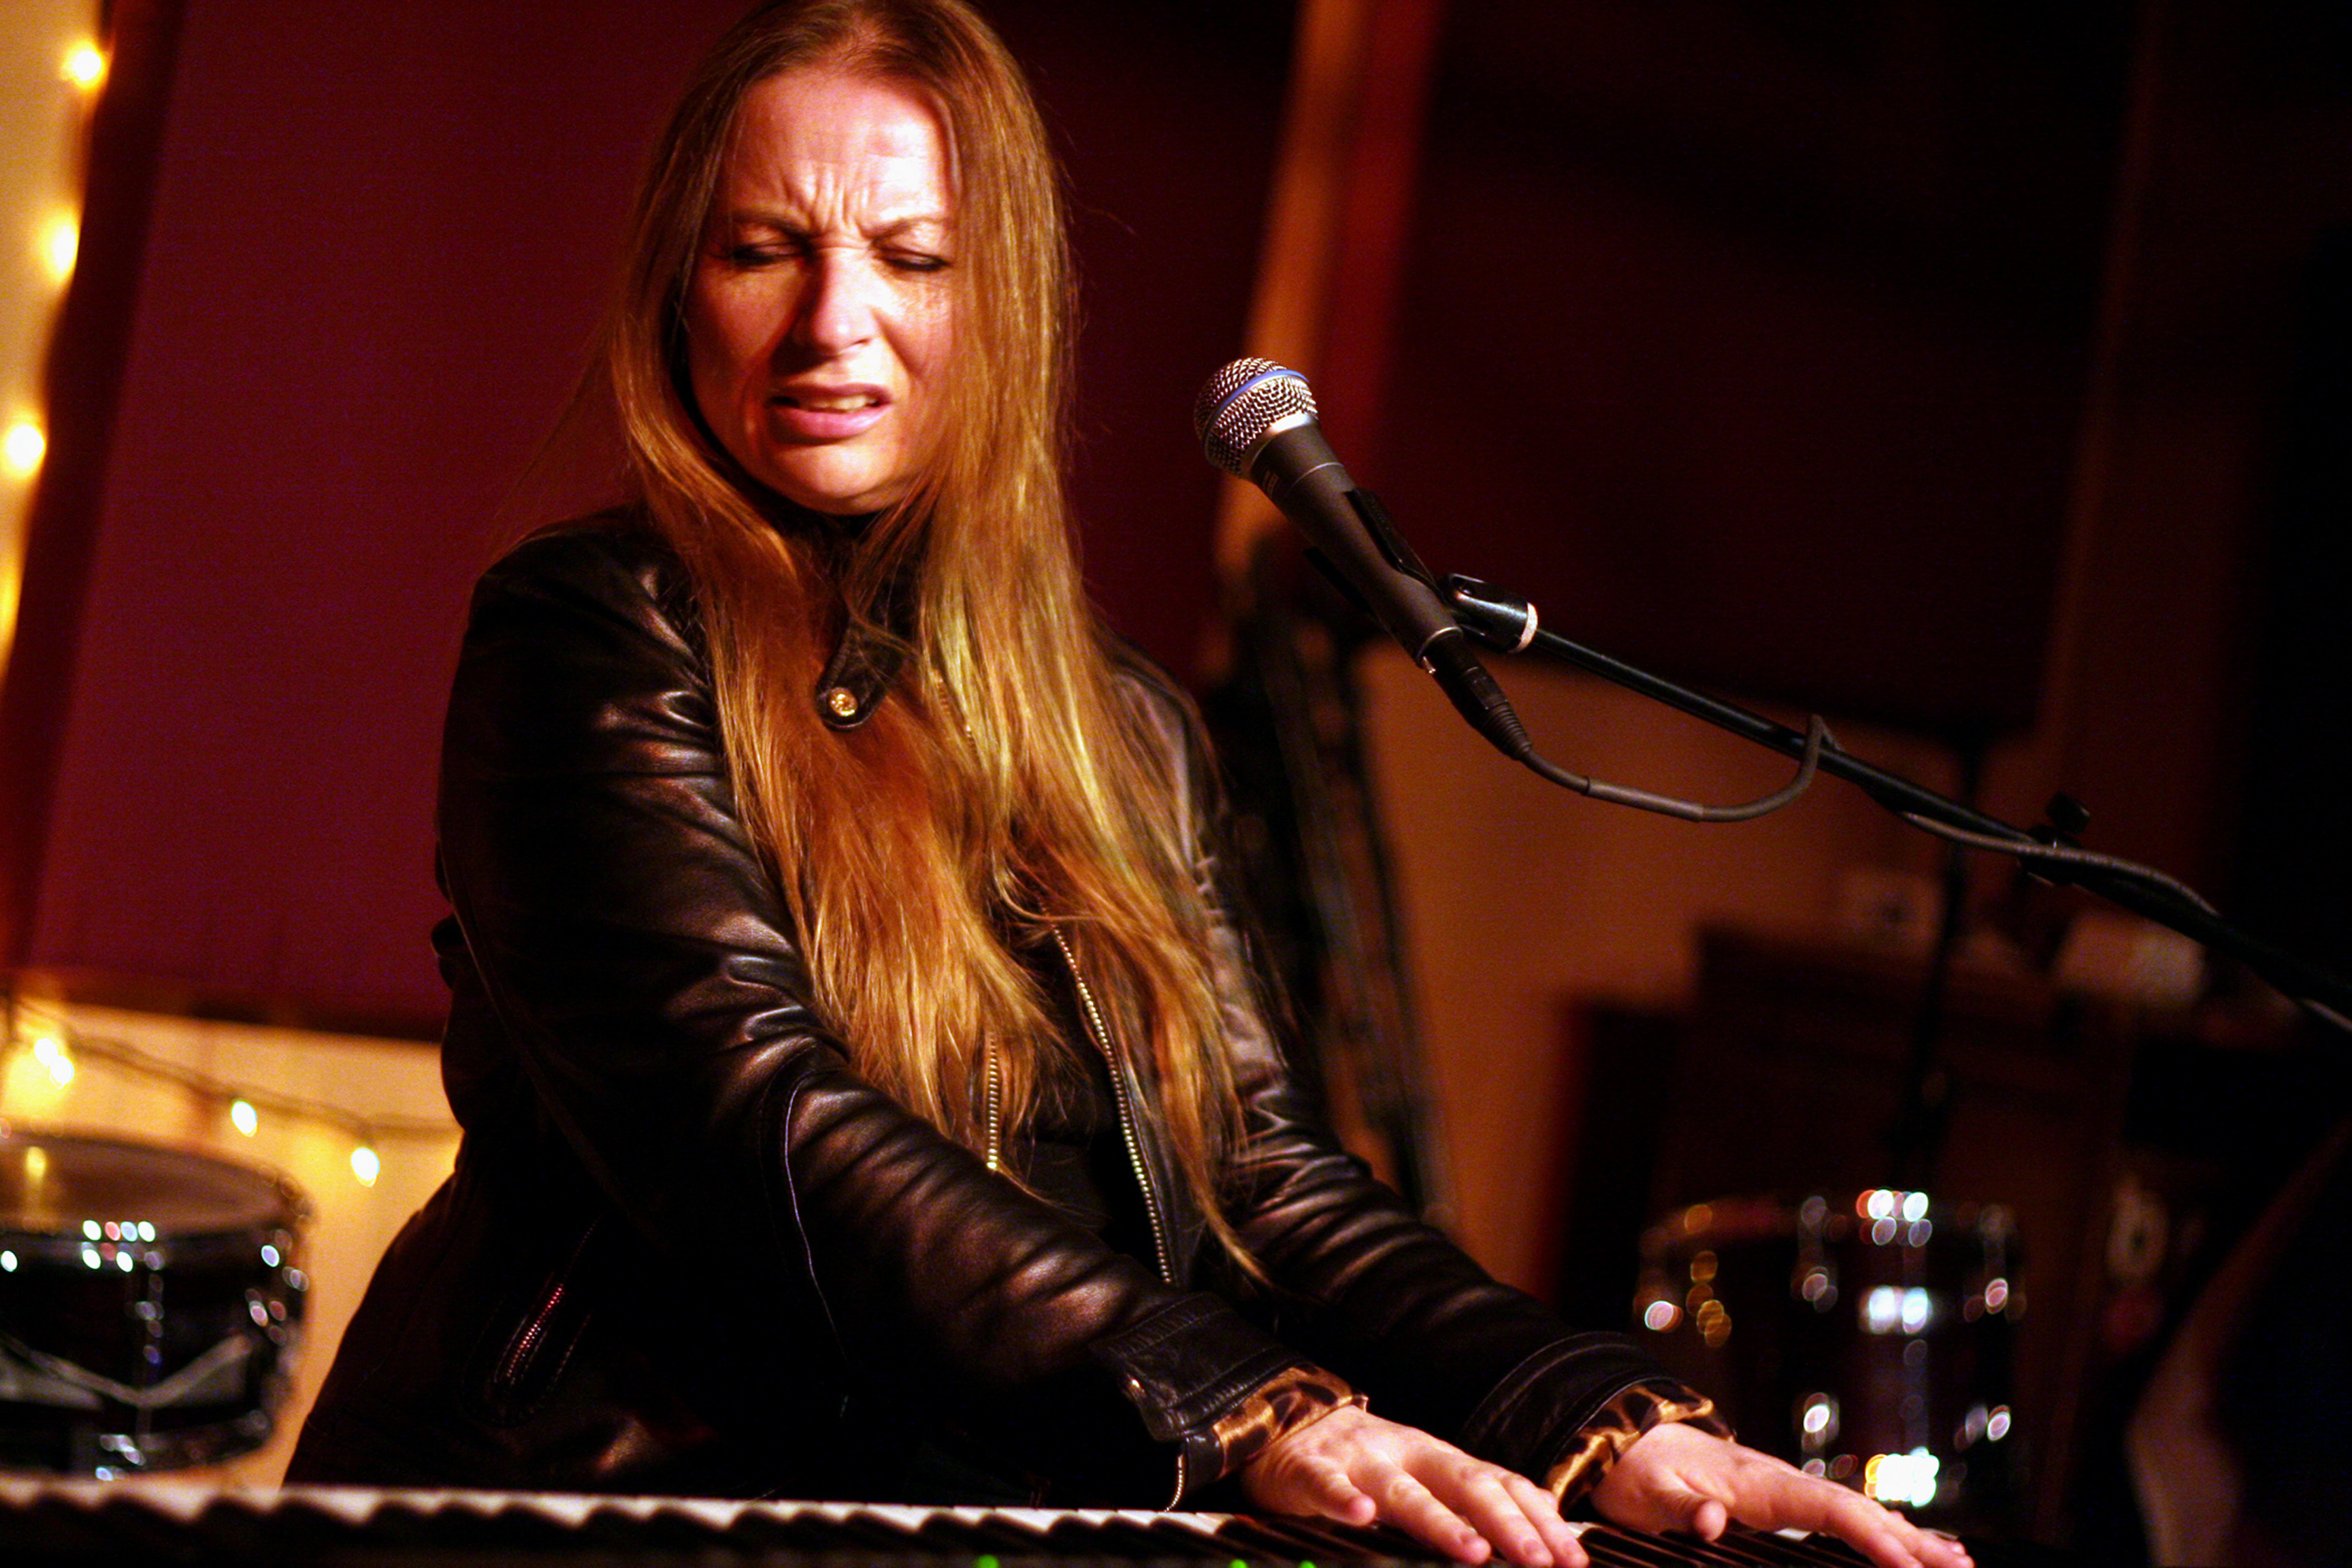 Judith Owen performing at the Living Room in Lower East Side, Manhattan on Monday night, February 26, 2007. (Photo by Hiroyuk